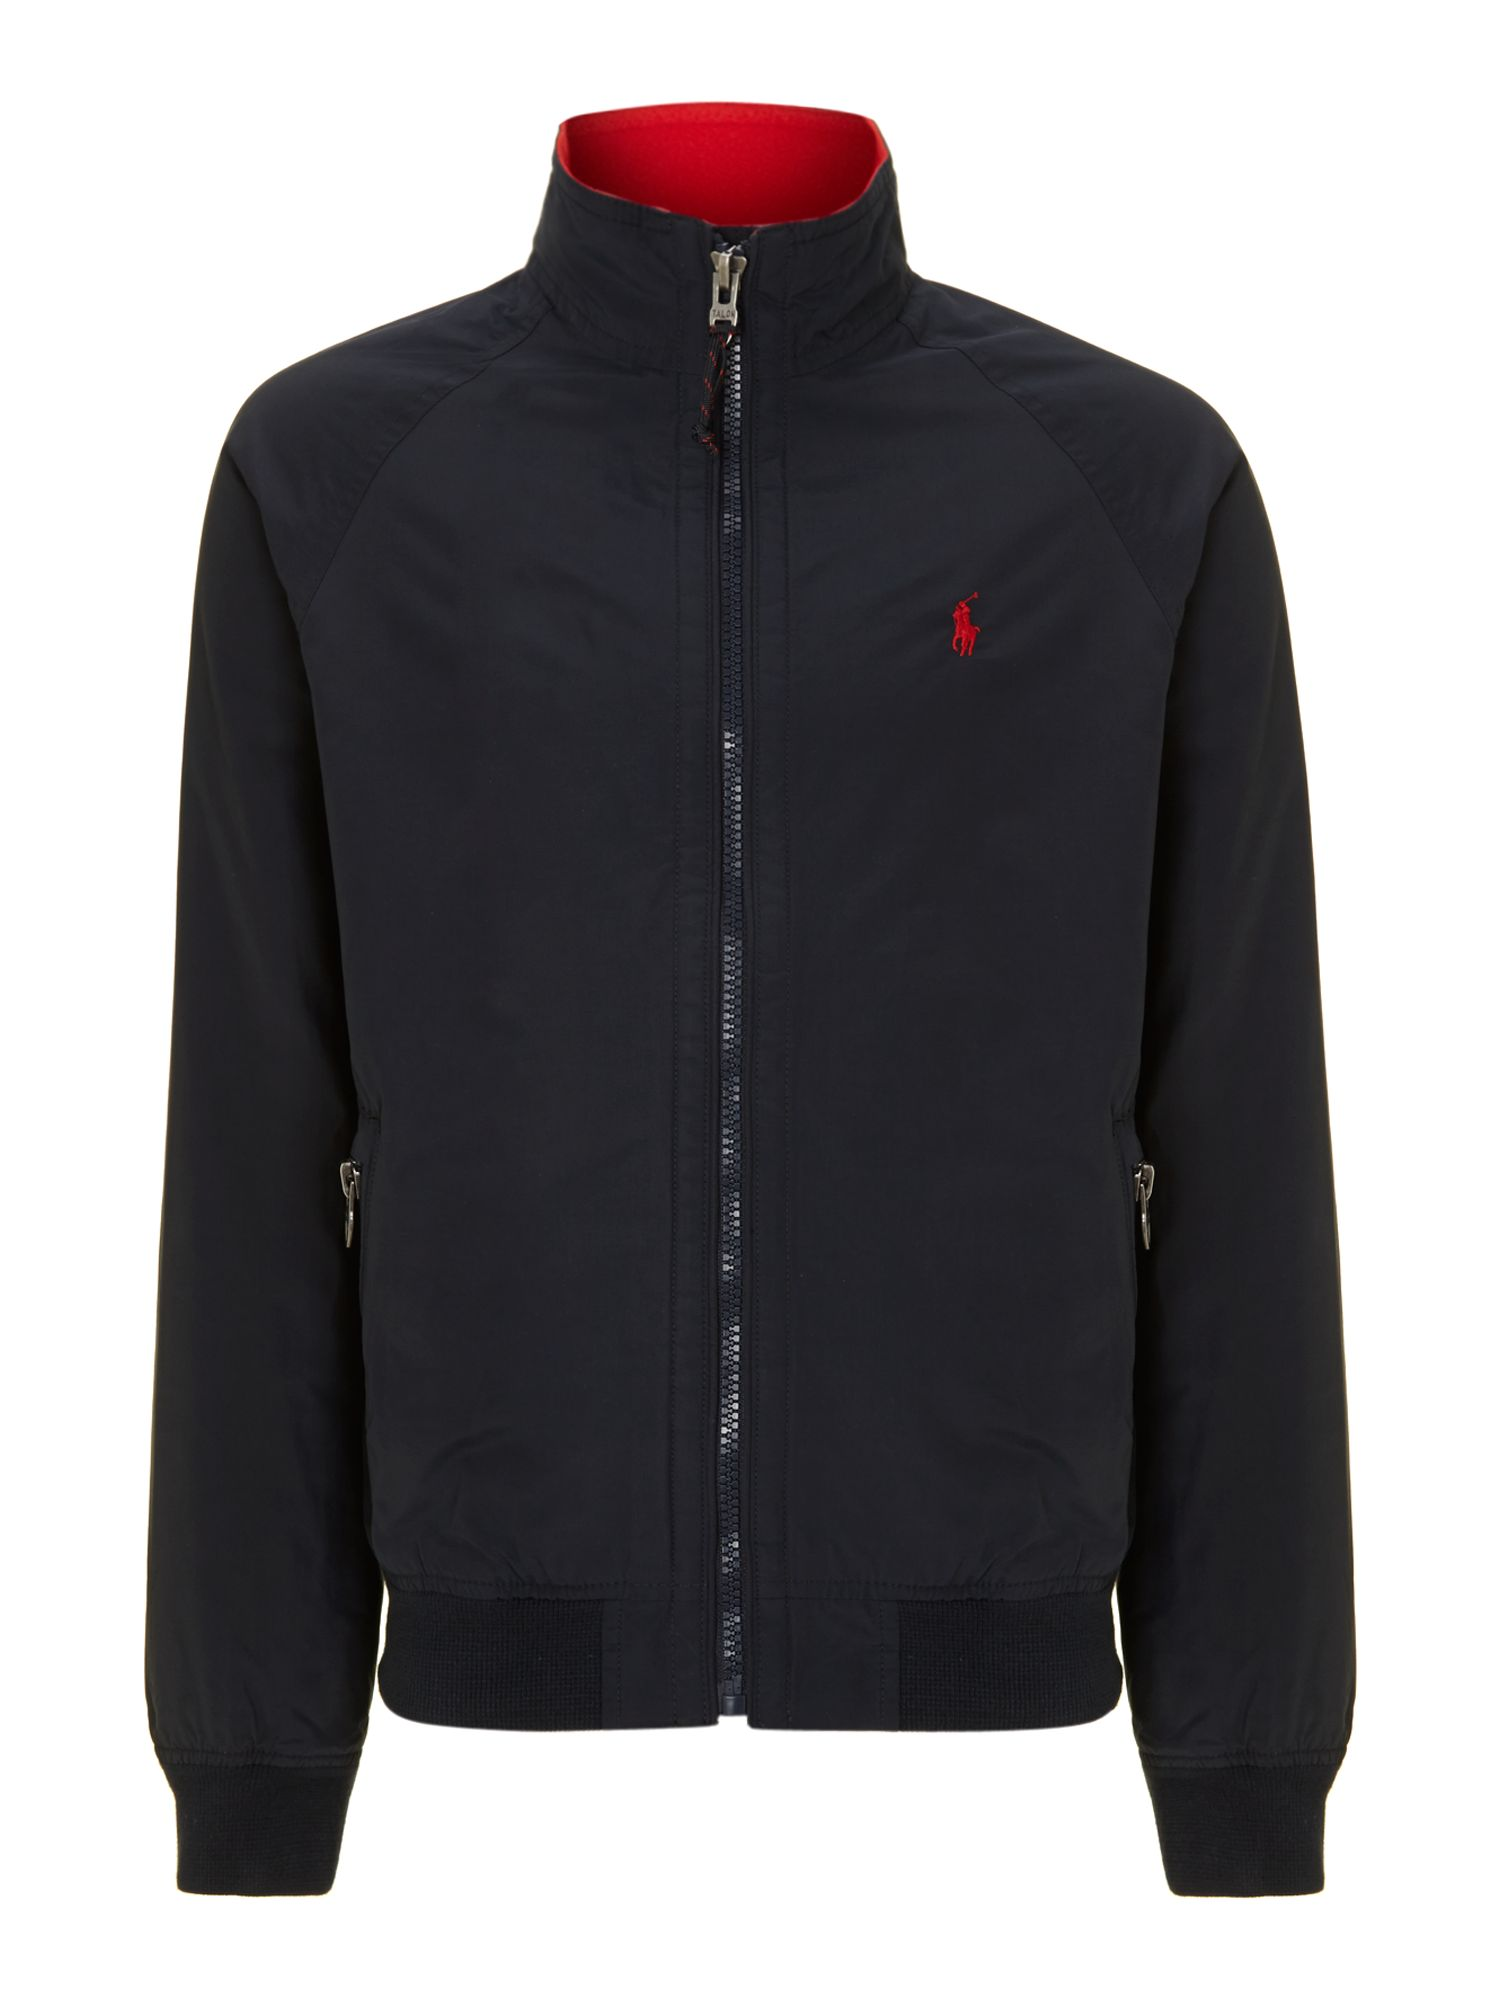 polo ralph lauren portage bomber jacket in blue for men lyst. Black Bedroom Furniture Sets. Home Design Ideas